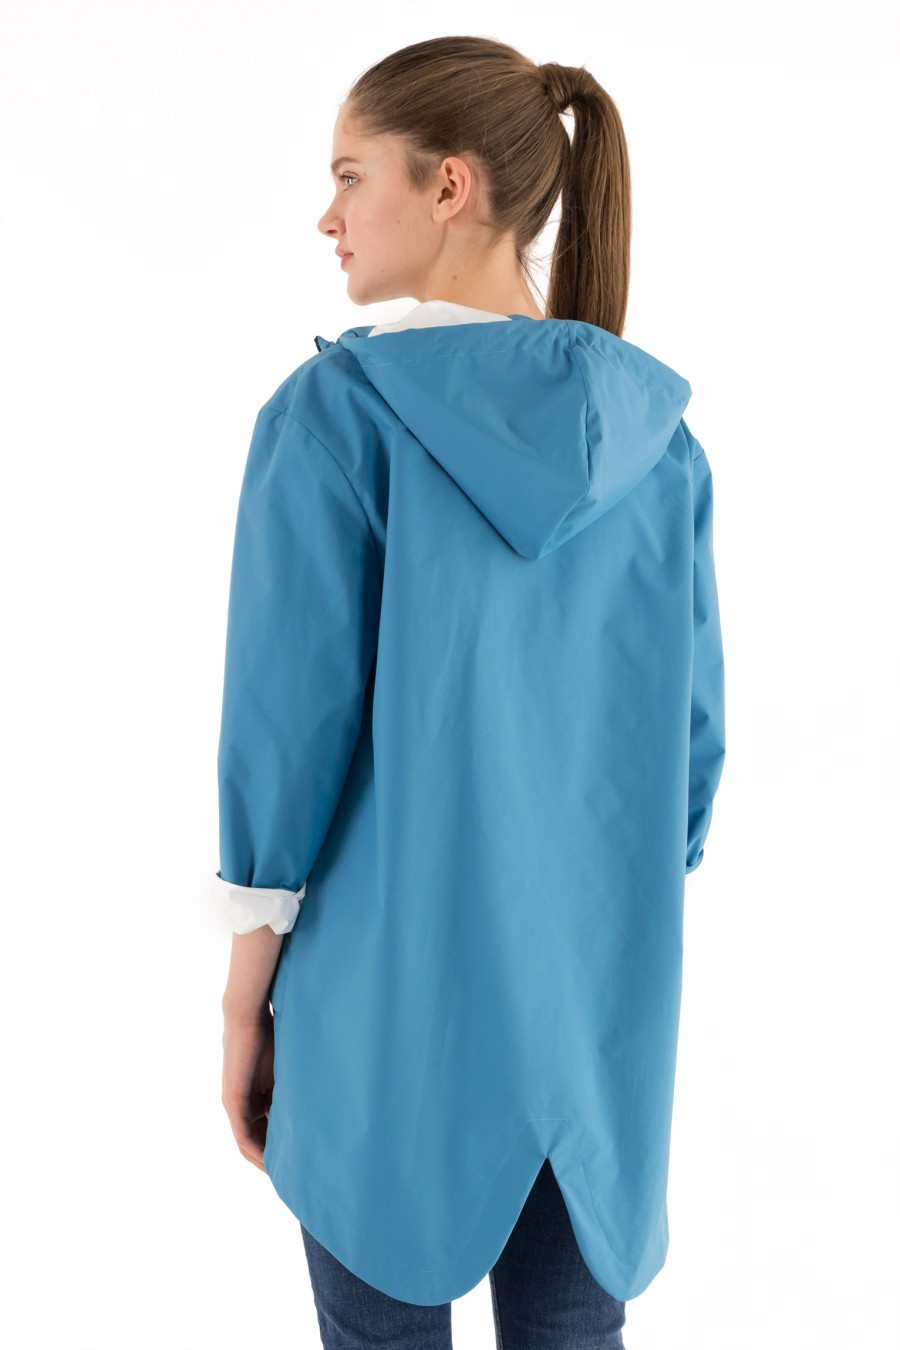 rain jacket Lazzari light blue